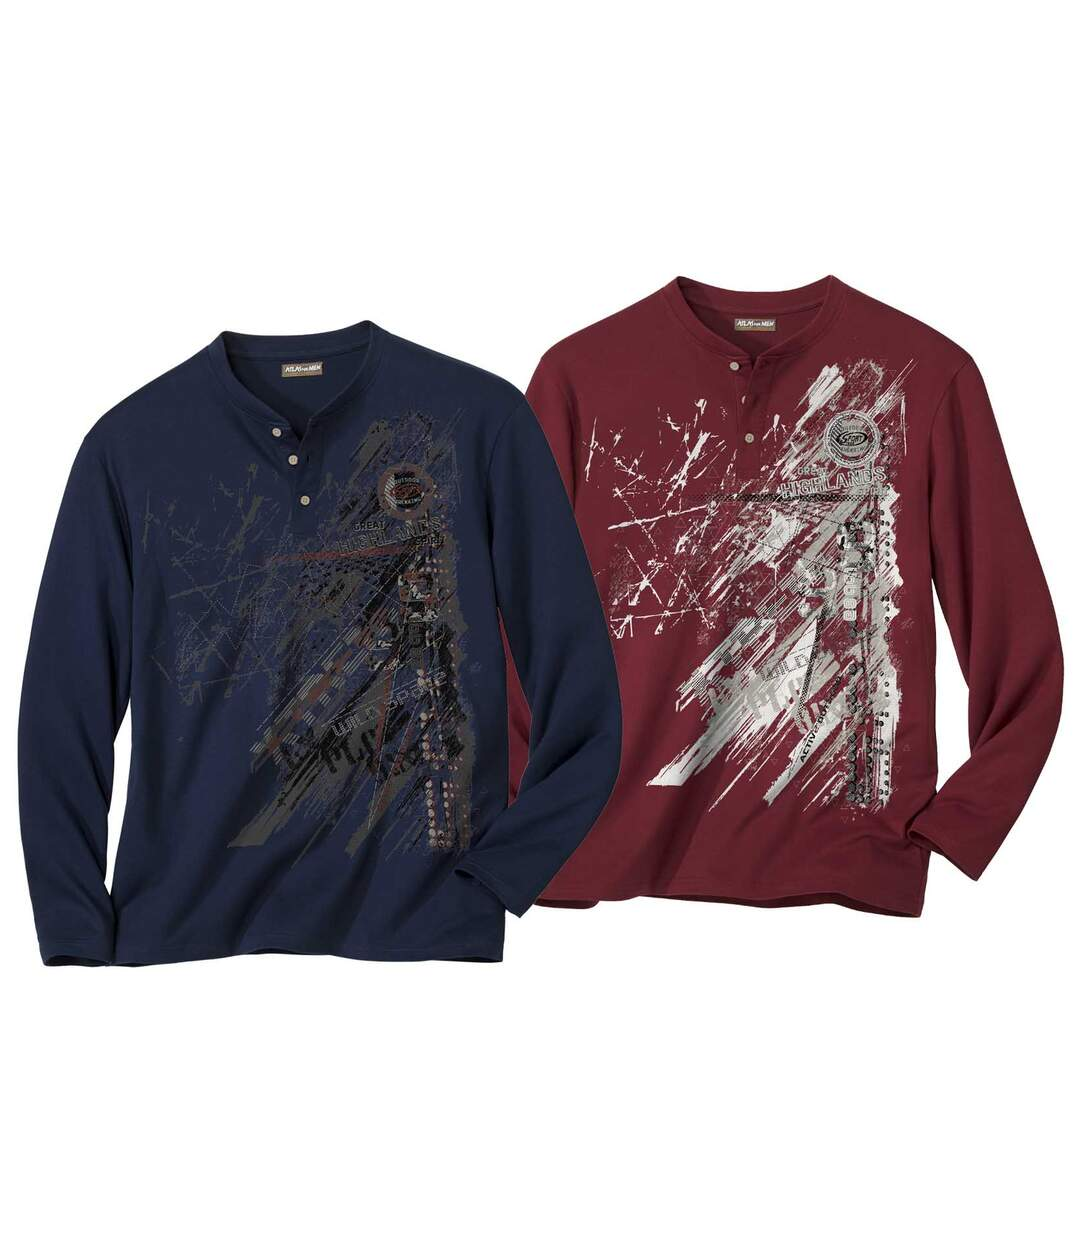 Pack of 2 Men's Long Sleeve Tops with Stylish Print - Navy Burgundy